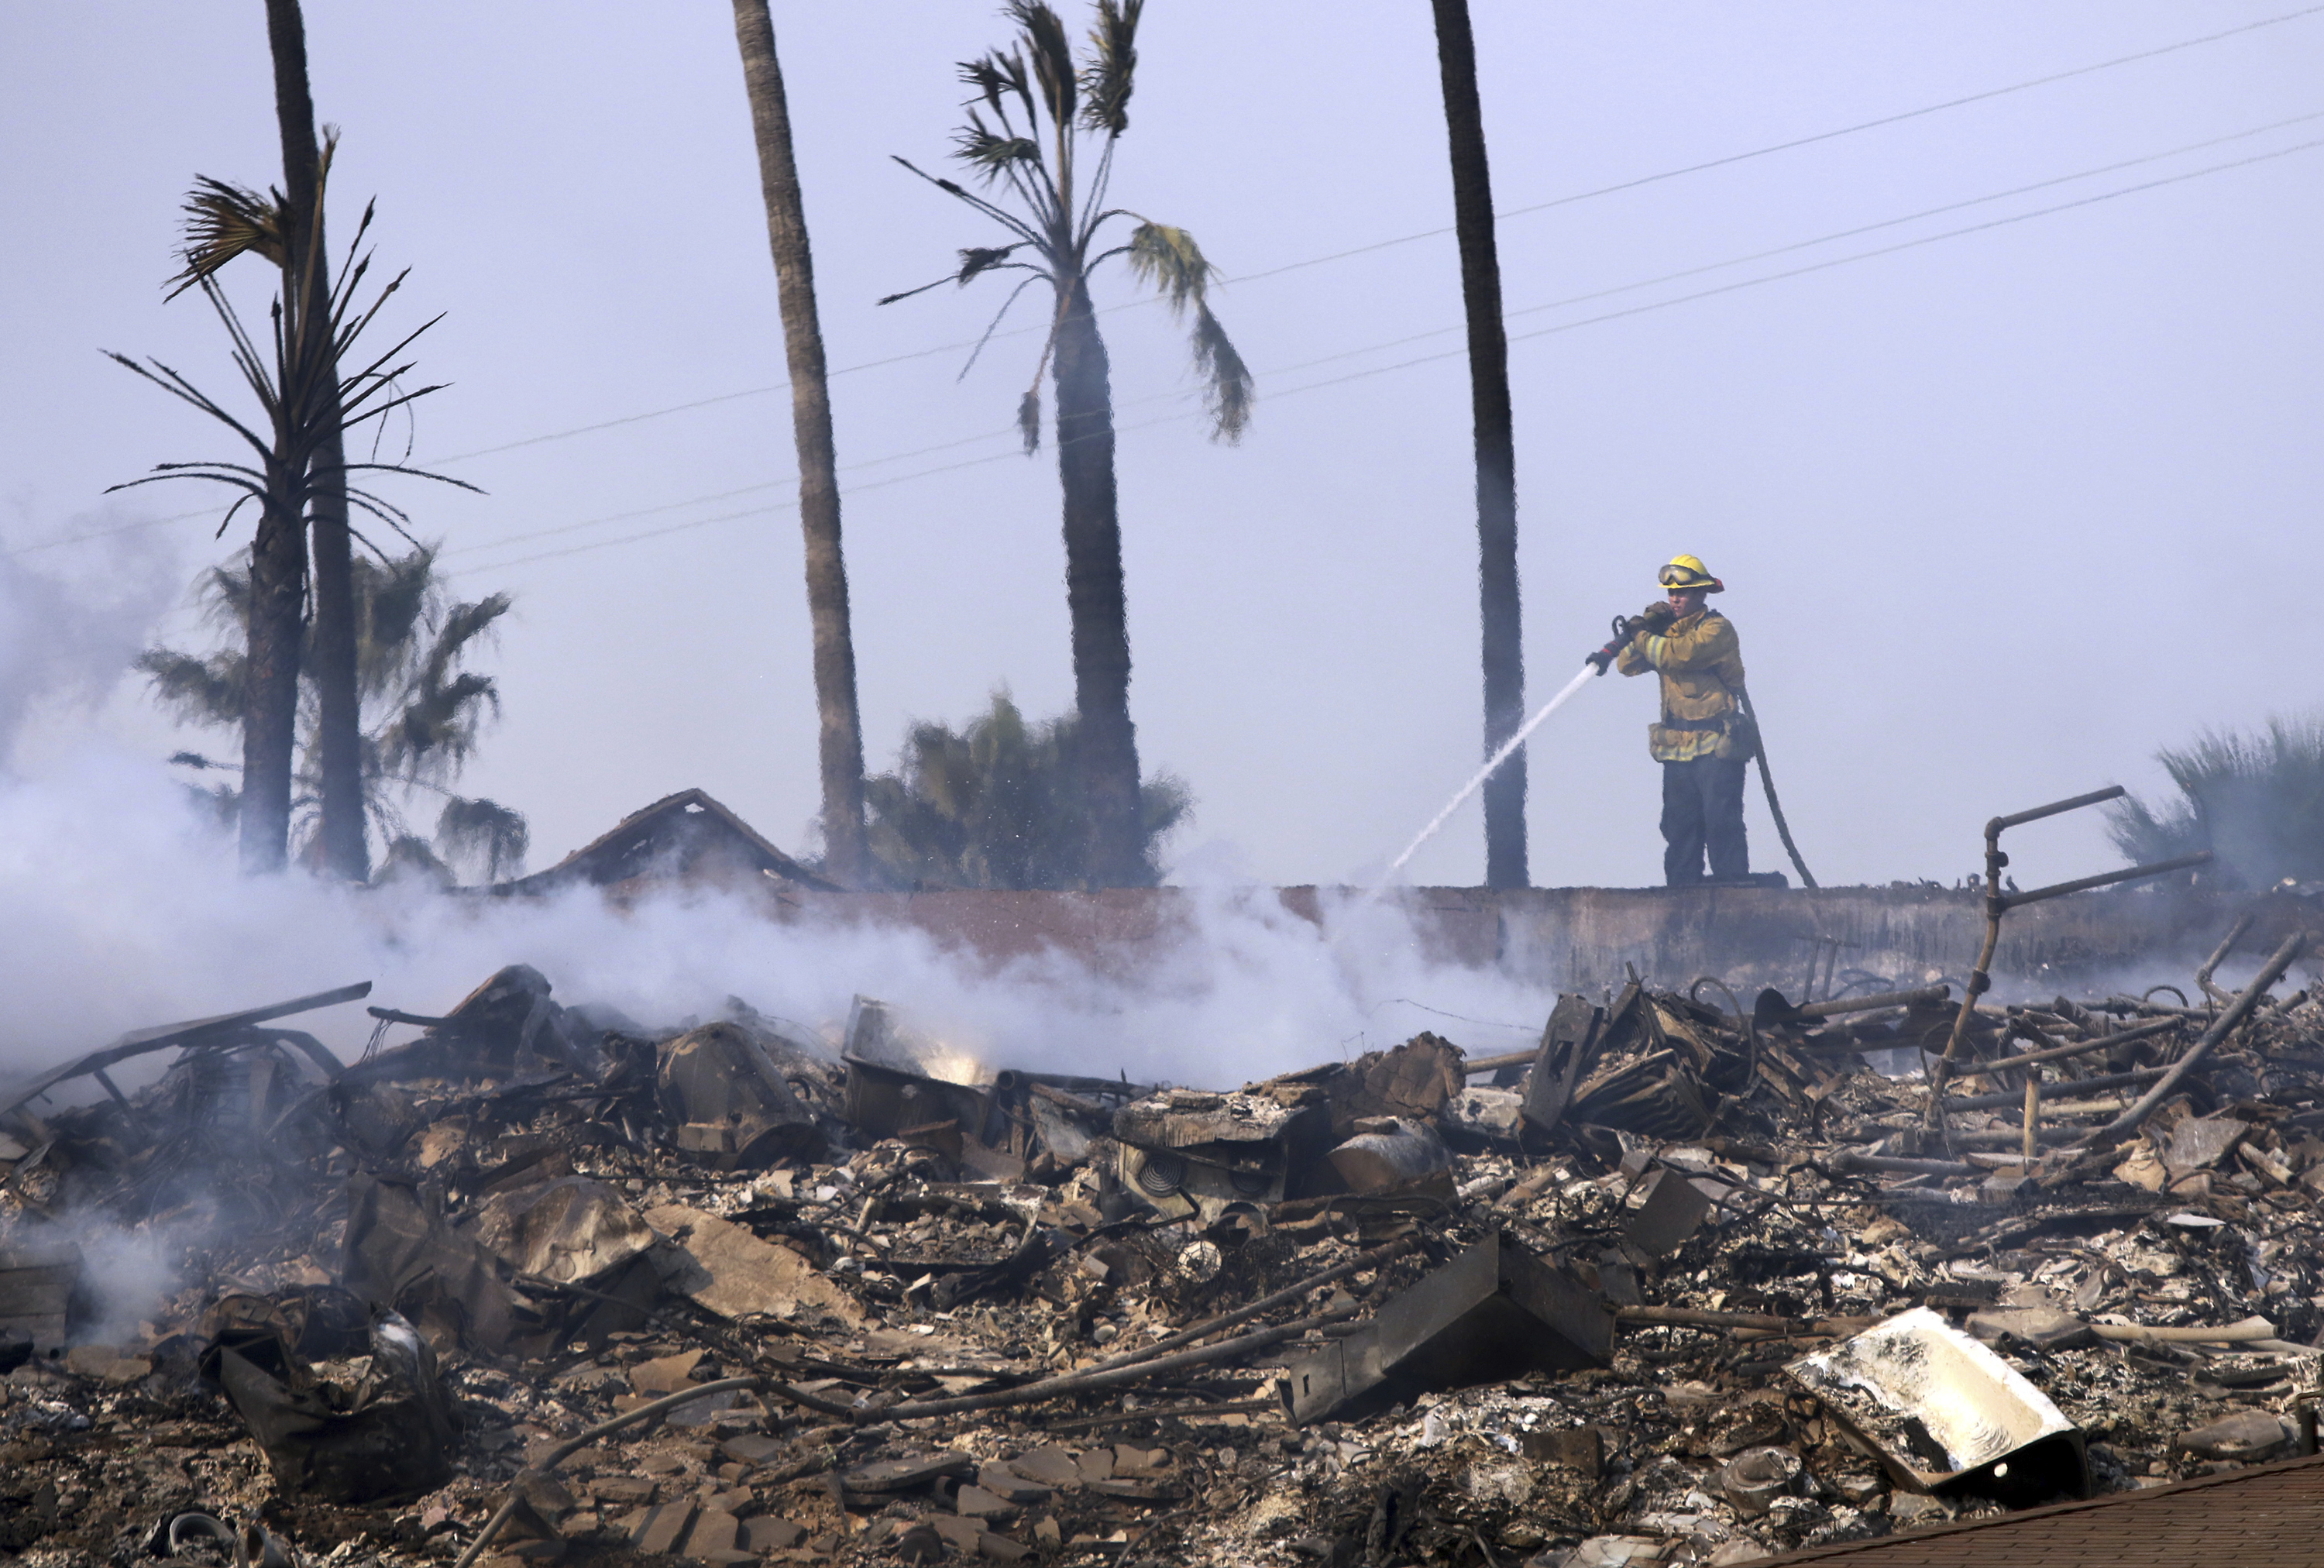 "<div class=""meta image-caption""><div class=""origin-logo origin-image none""><span>none</span></div><span class=""caption-text"">A firefighter hoses down the remains of a destroyed home after the Thomas fire swept through Ventura, Calif., Tuesday, Dec. 5, 2017. (Daniel Dreifuss via AP)</span></div>"